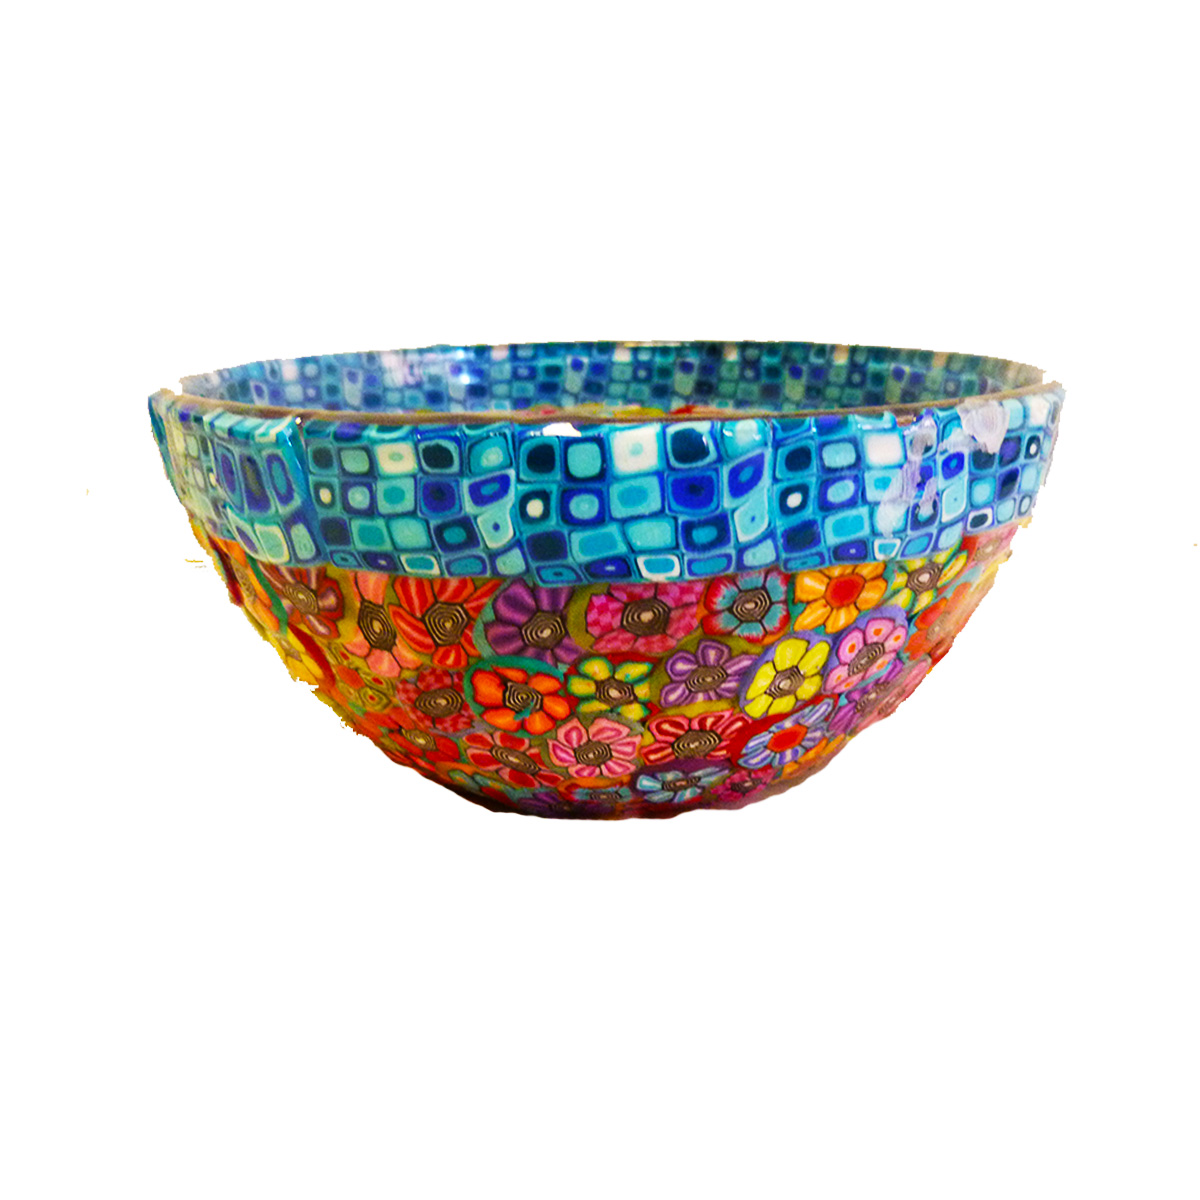 Colorful Serving Bowl For Cereal, Snack Bowl, Candy Bowl